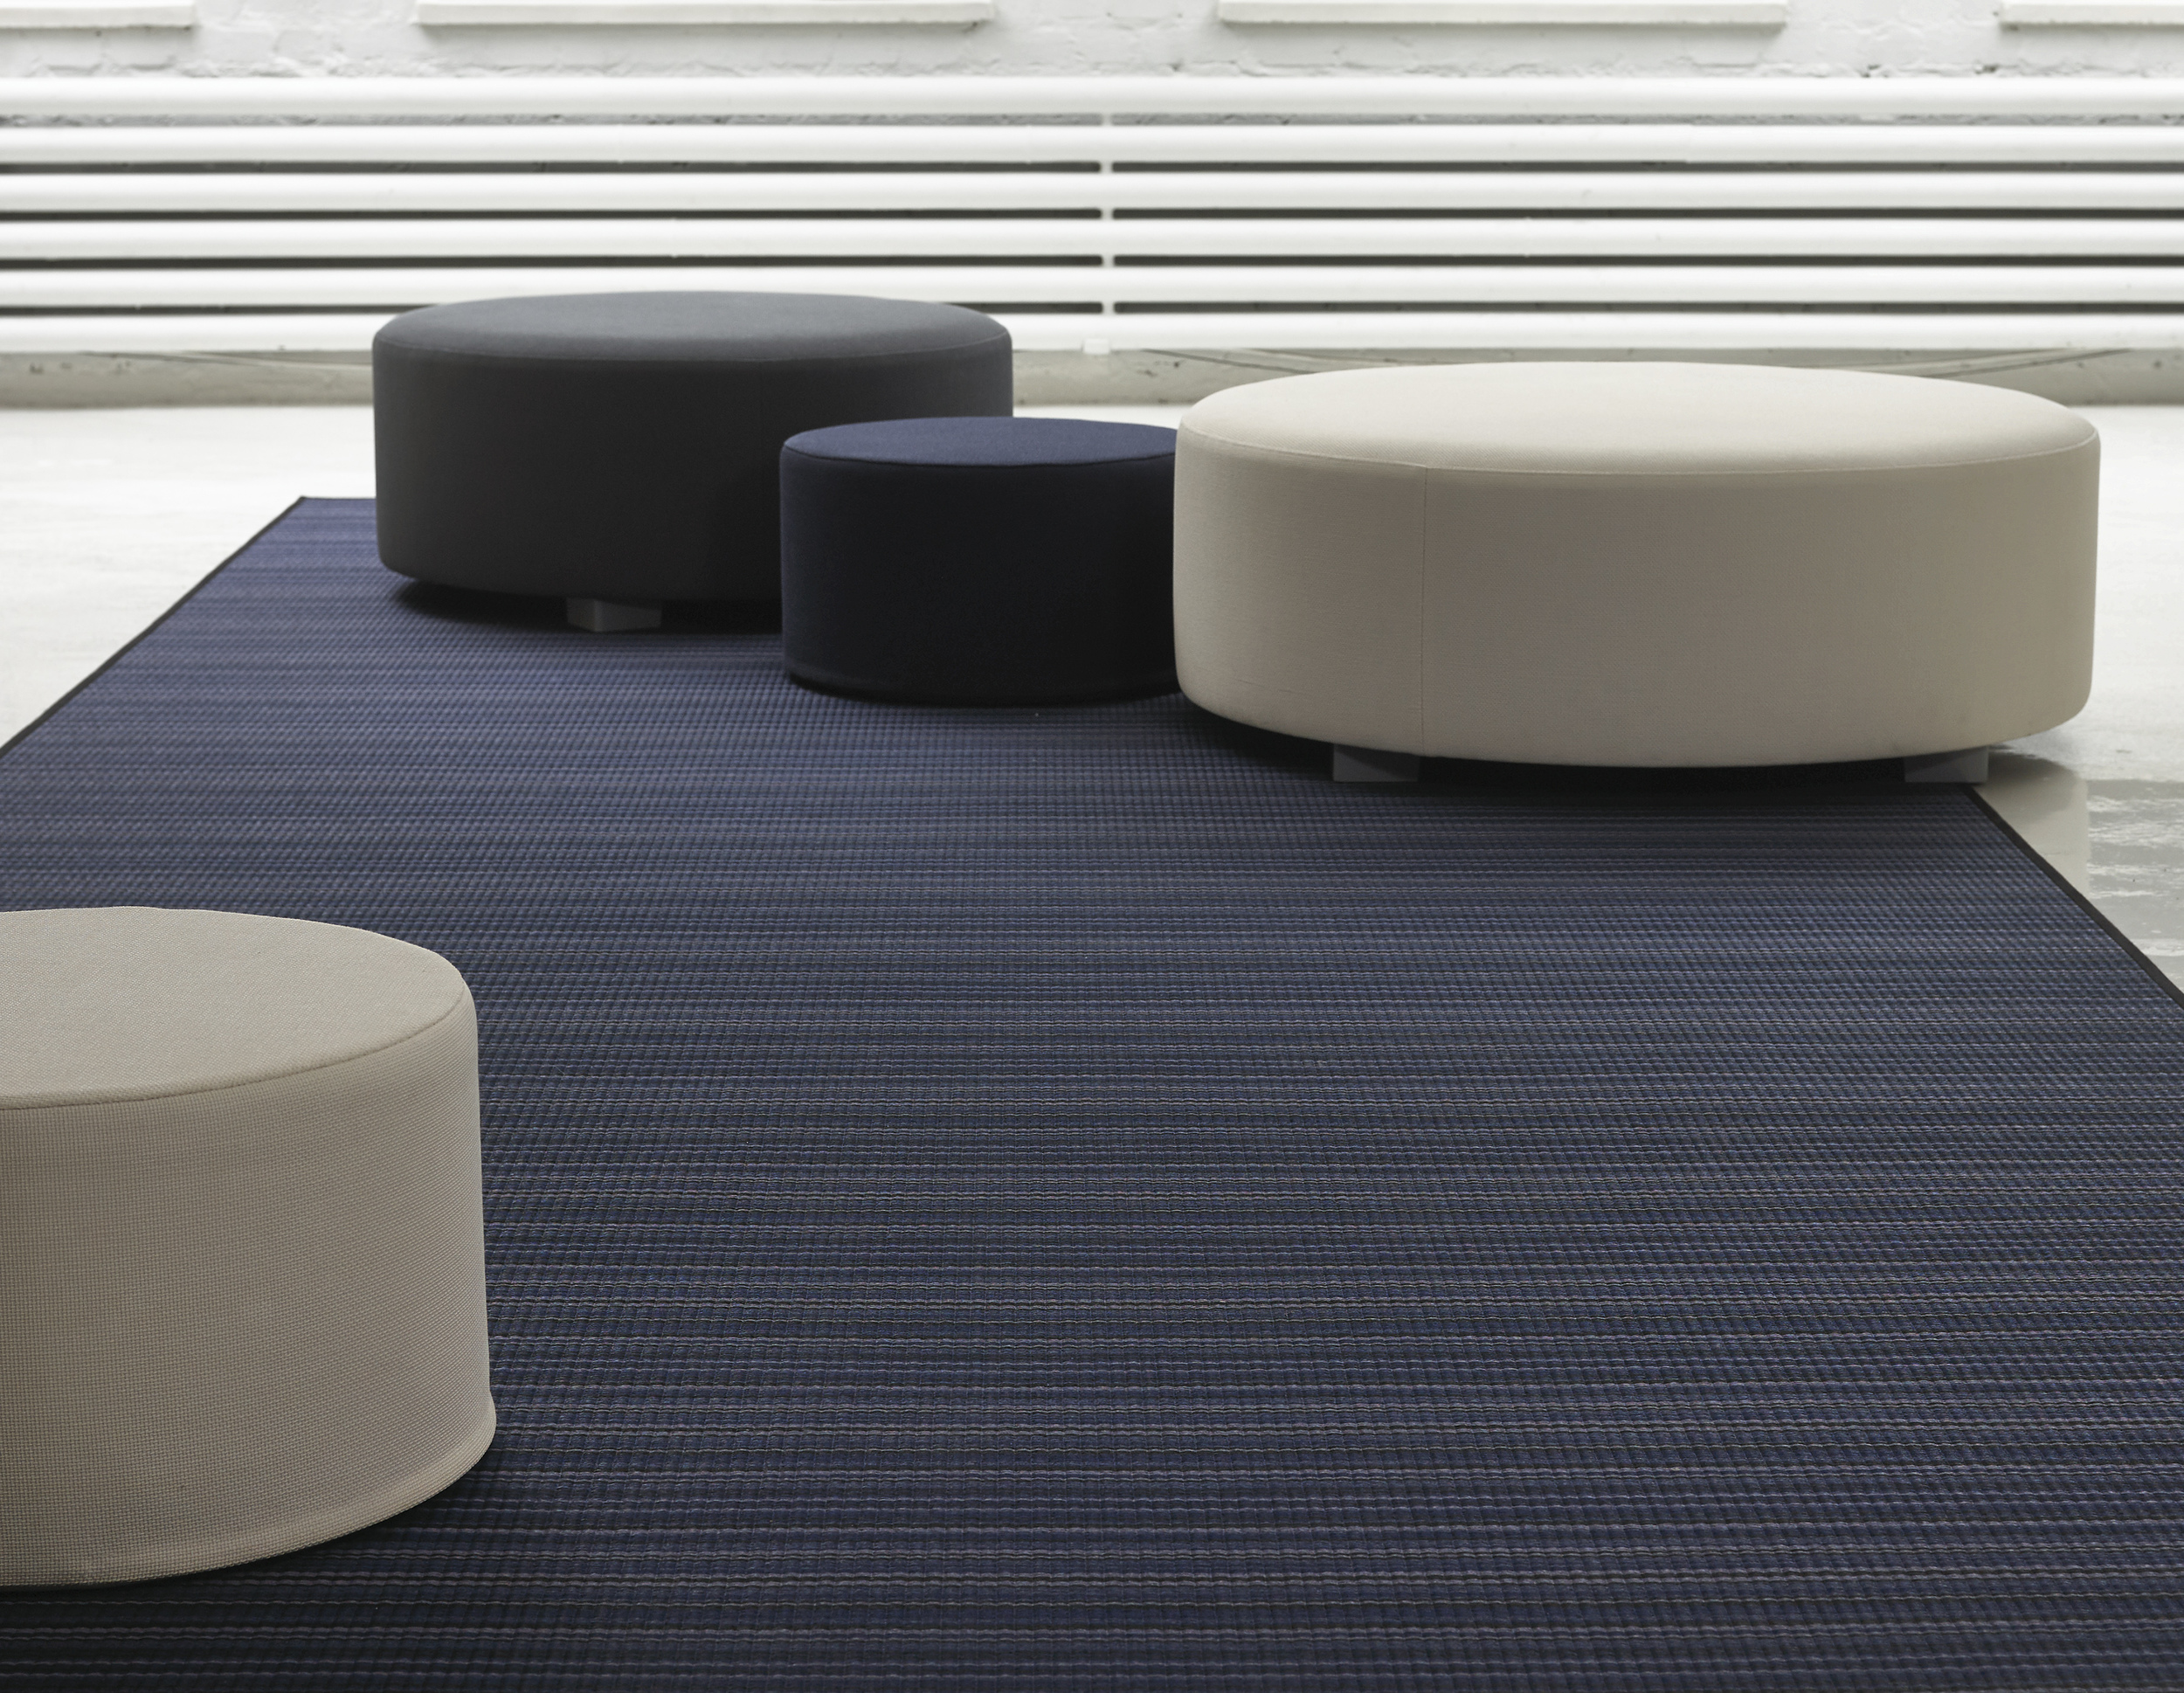 Round Benches with metal feet and Round Cool Cushions